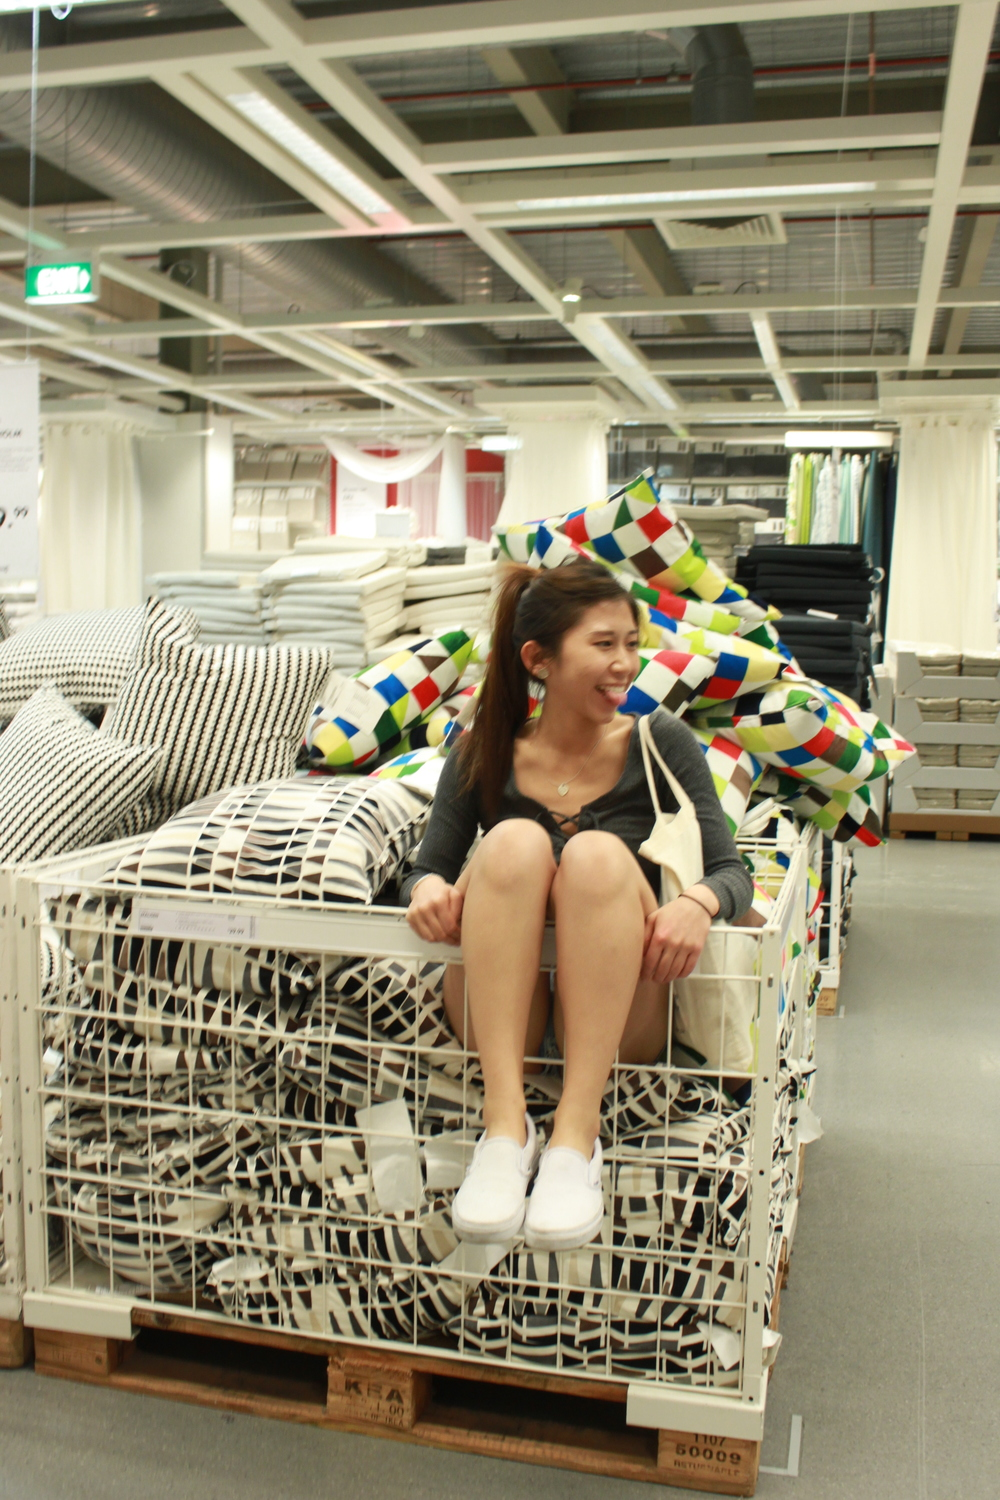 Hanging around ikea like a kid